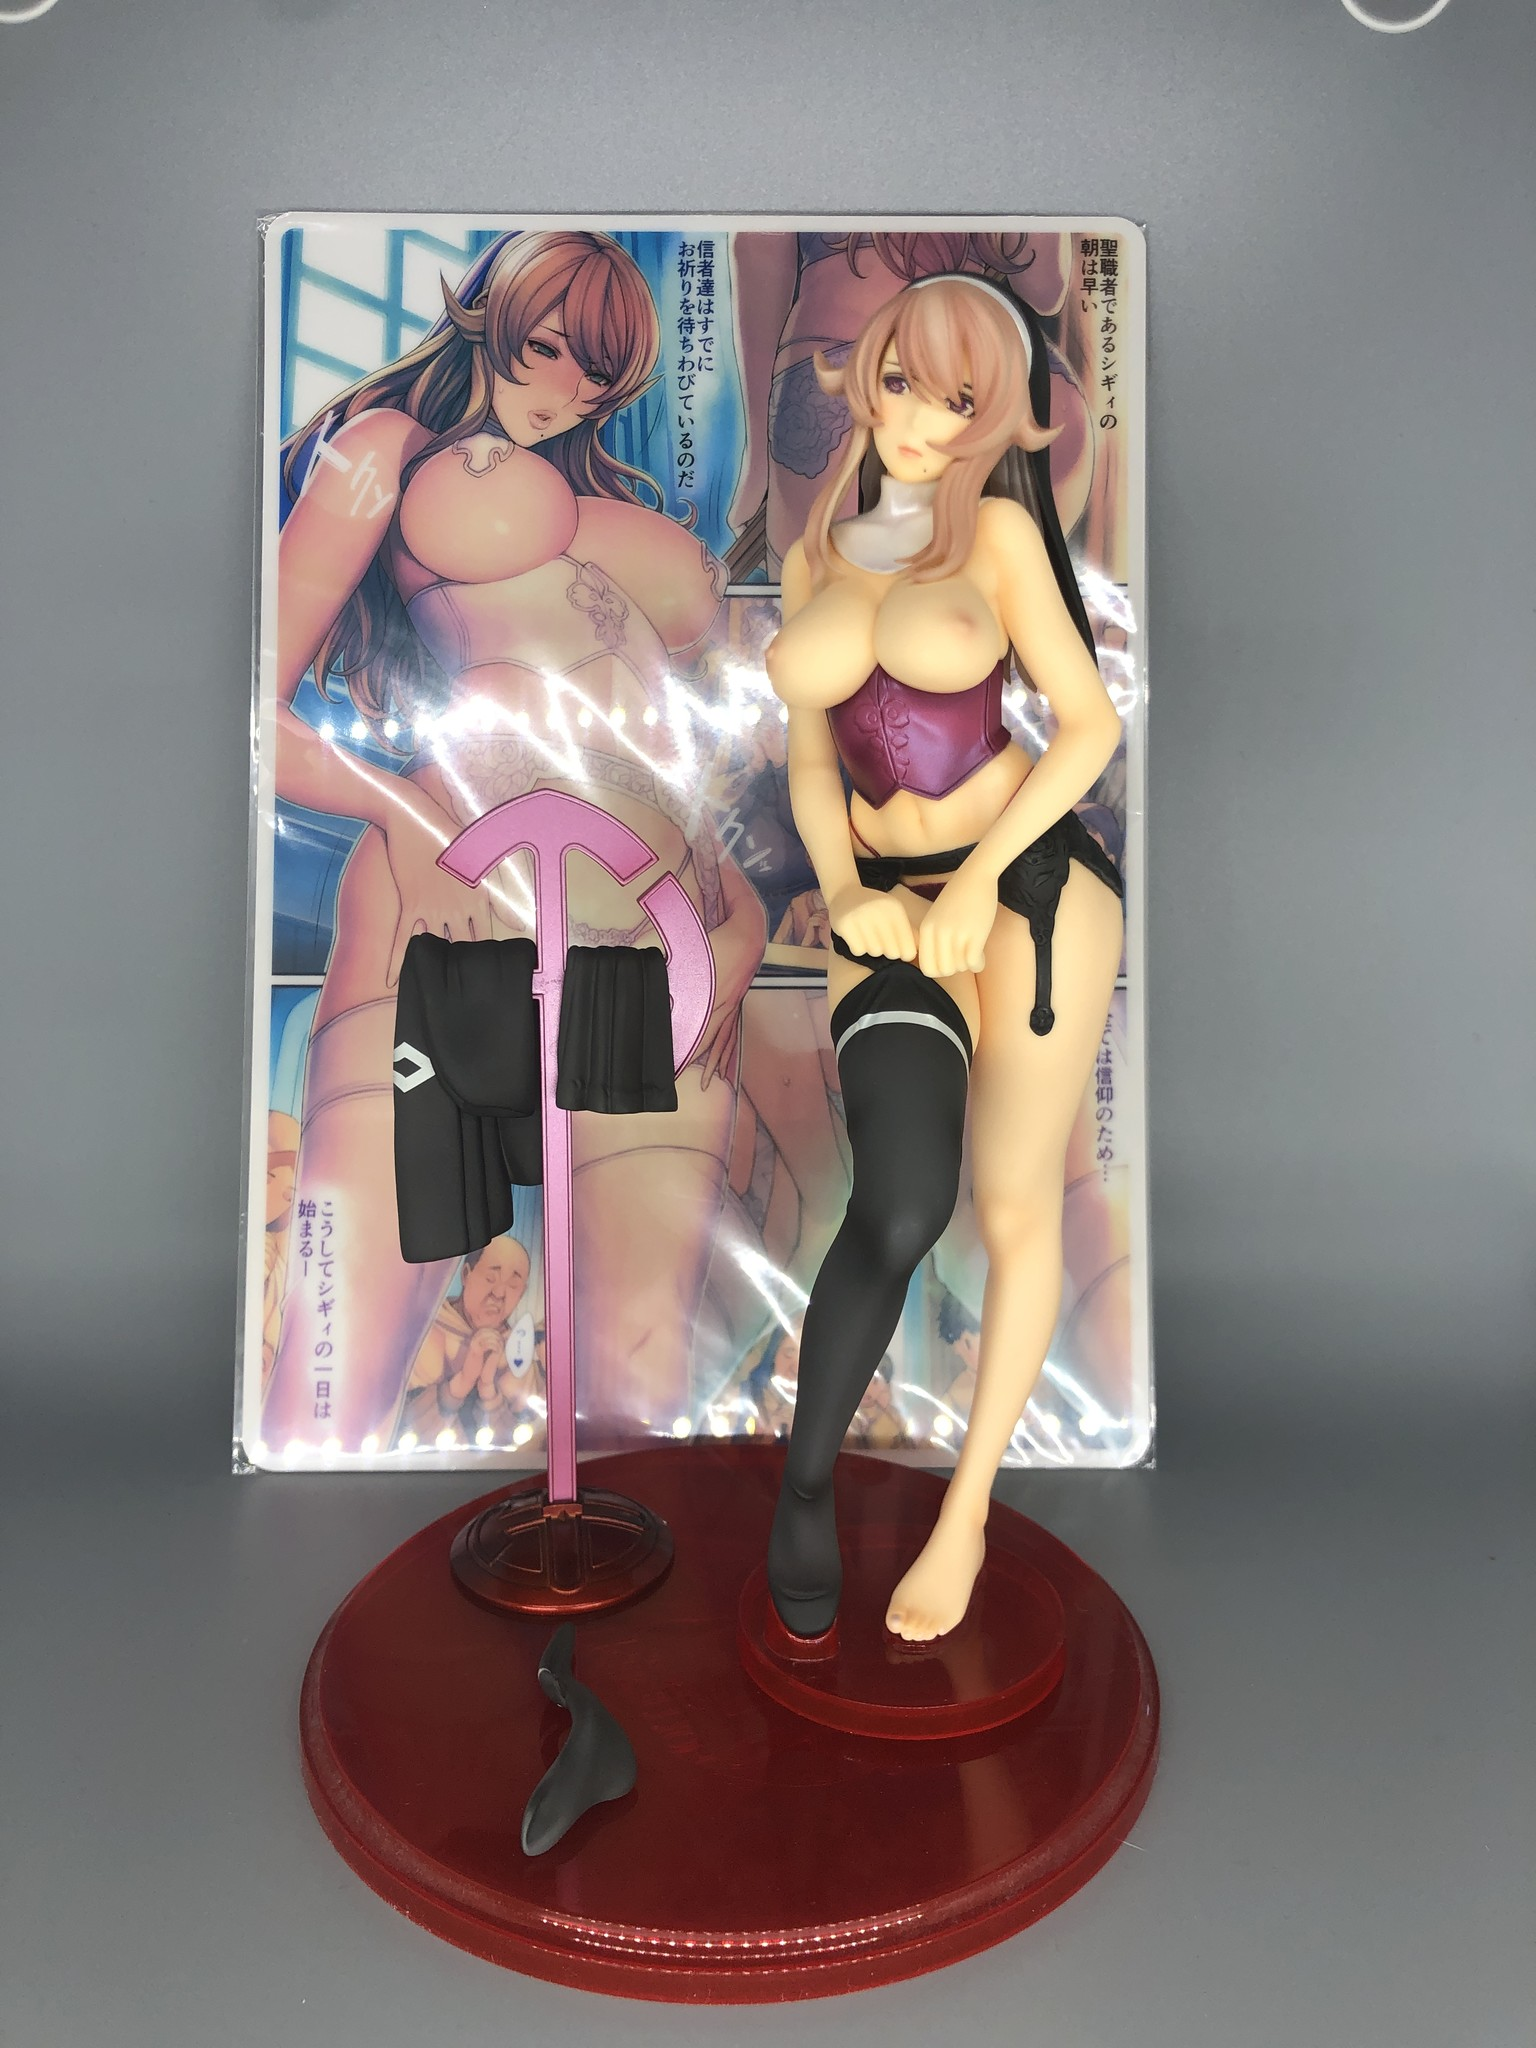 https://static.myfigurecollection.net/upload/pictures/2020/09/17/2522725.jpeg